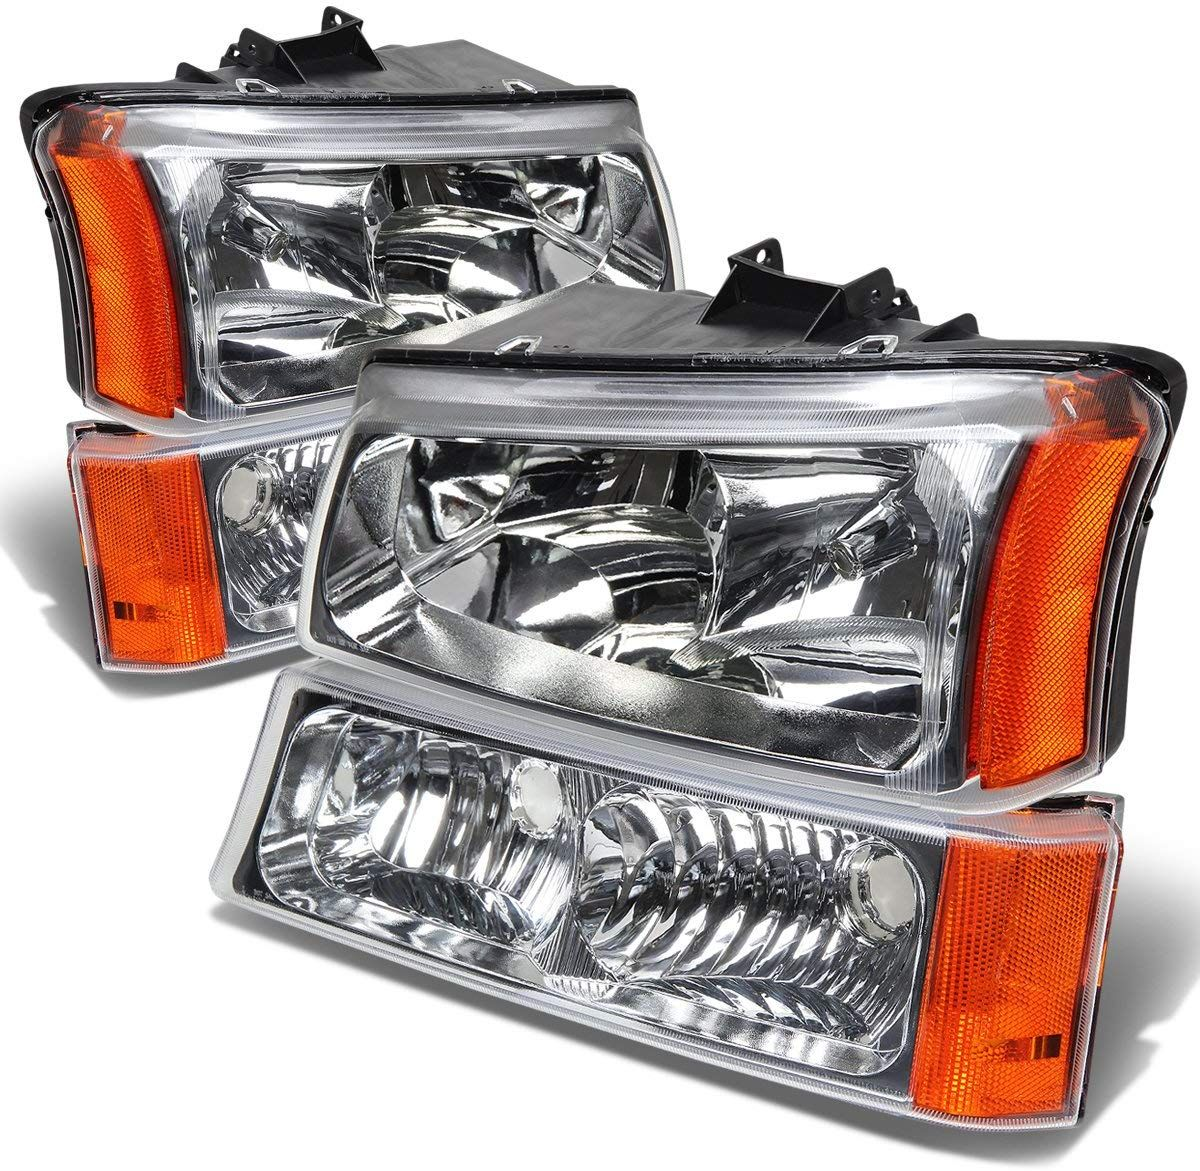 COMPATIBLE WITH 03-06 Chevrolet Avalanche 1500 03-06 ...